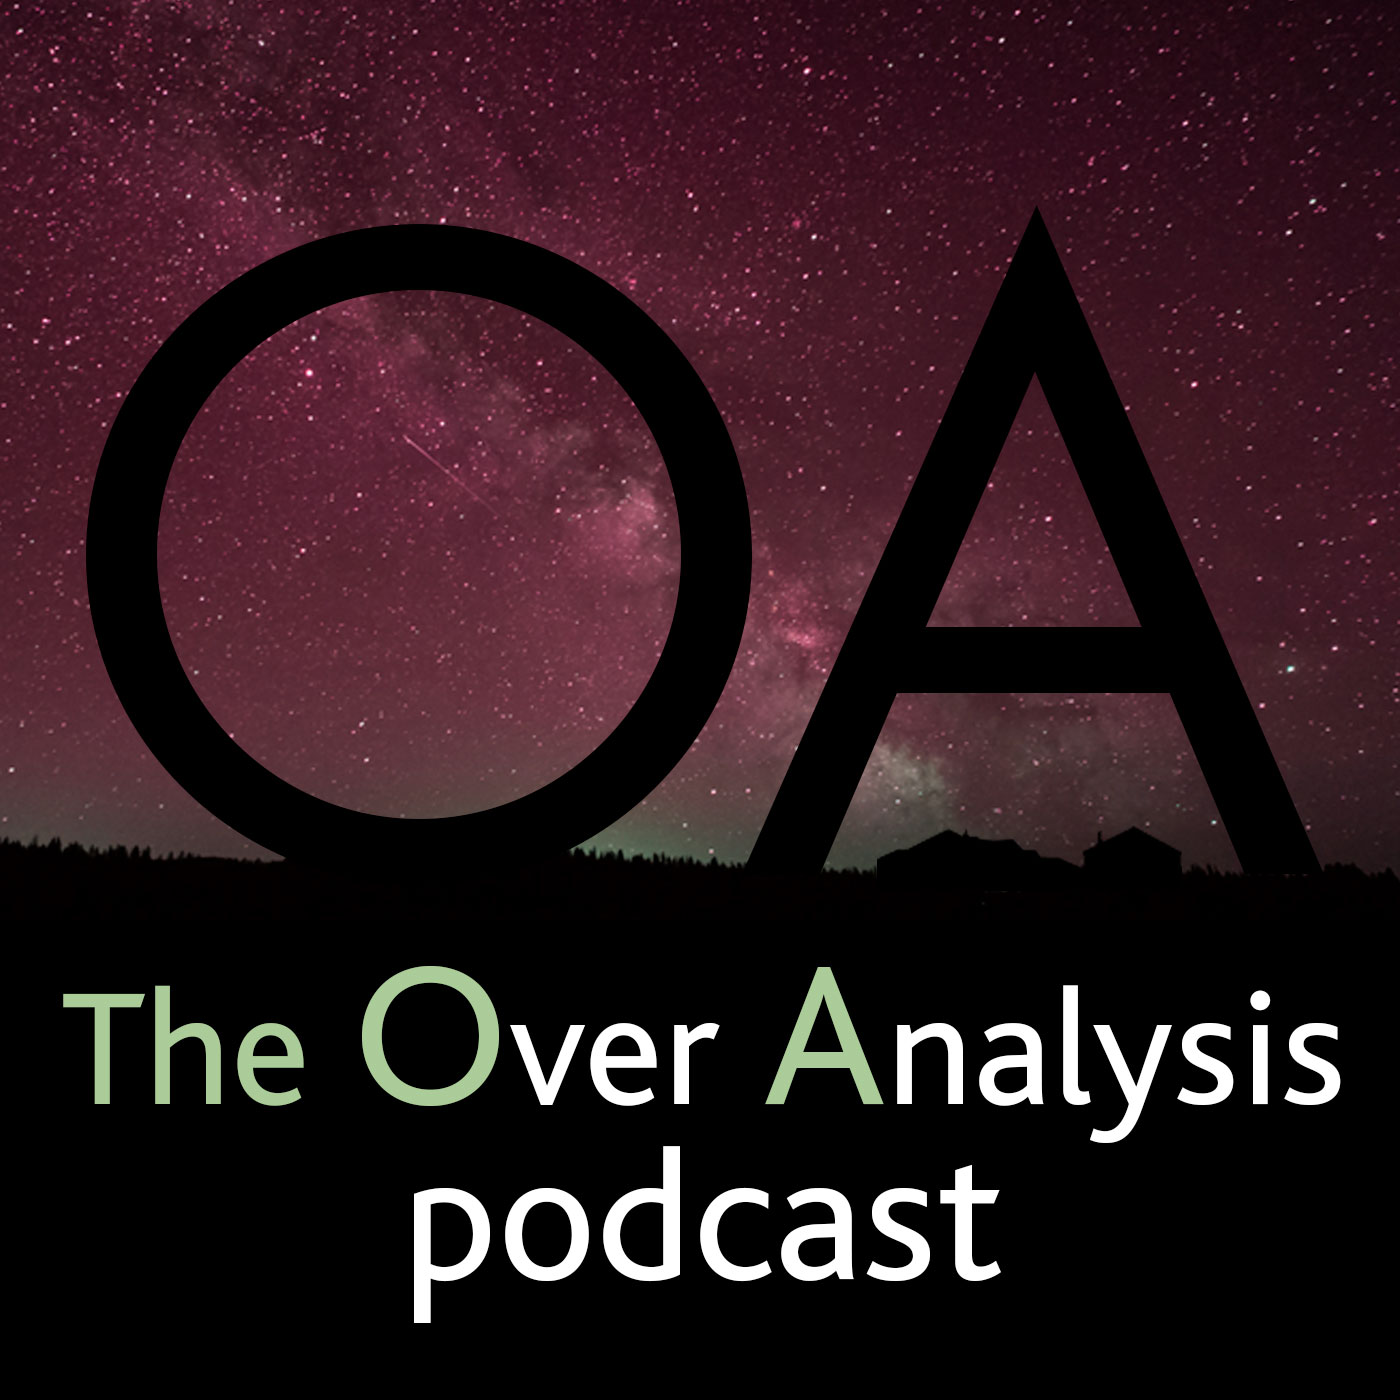 The Over Analysis of Netflix' The OA